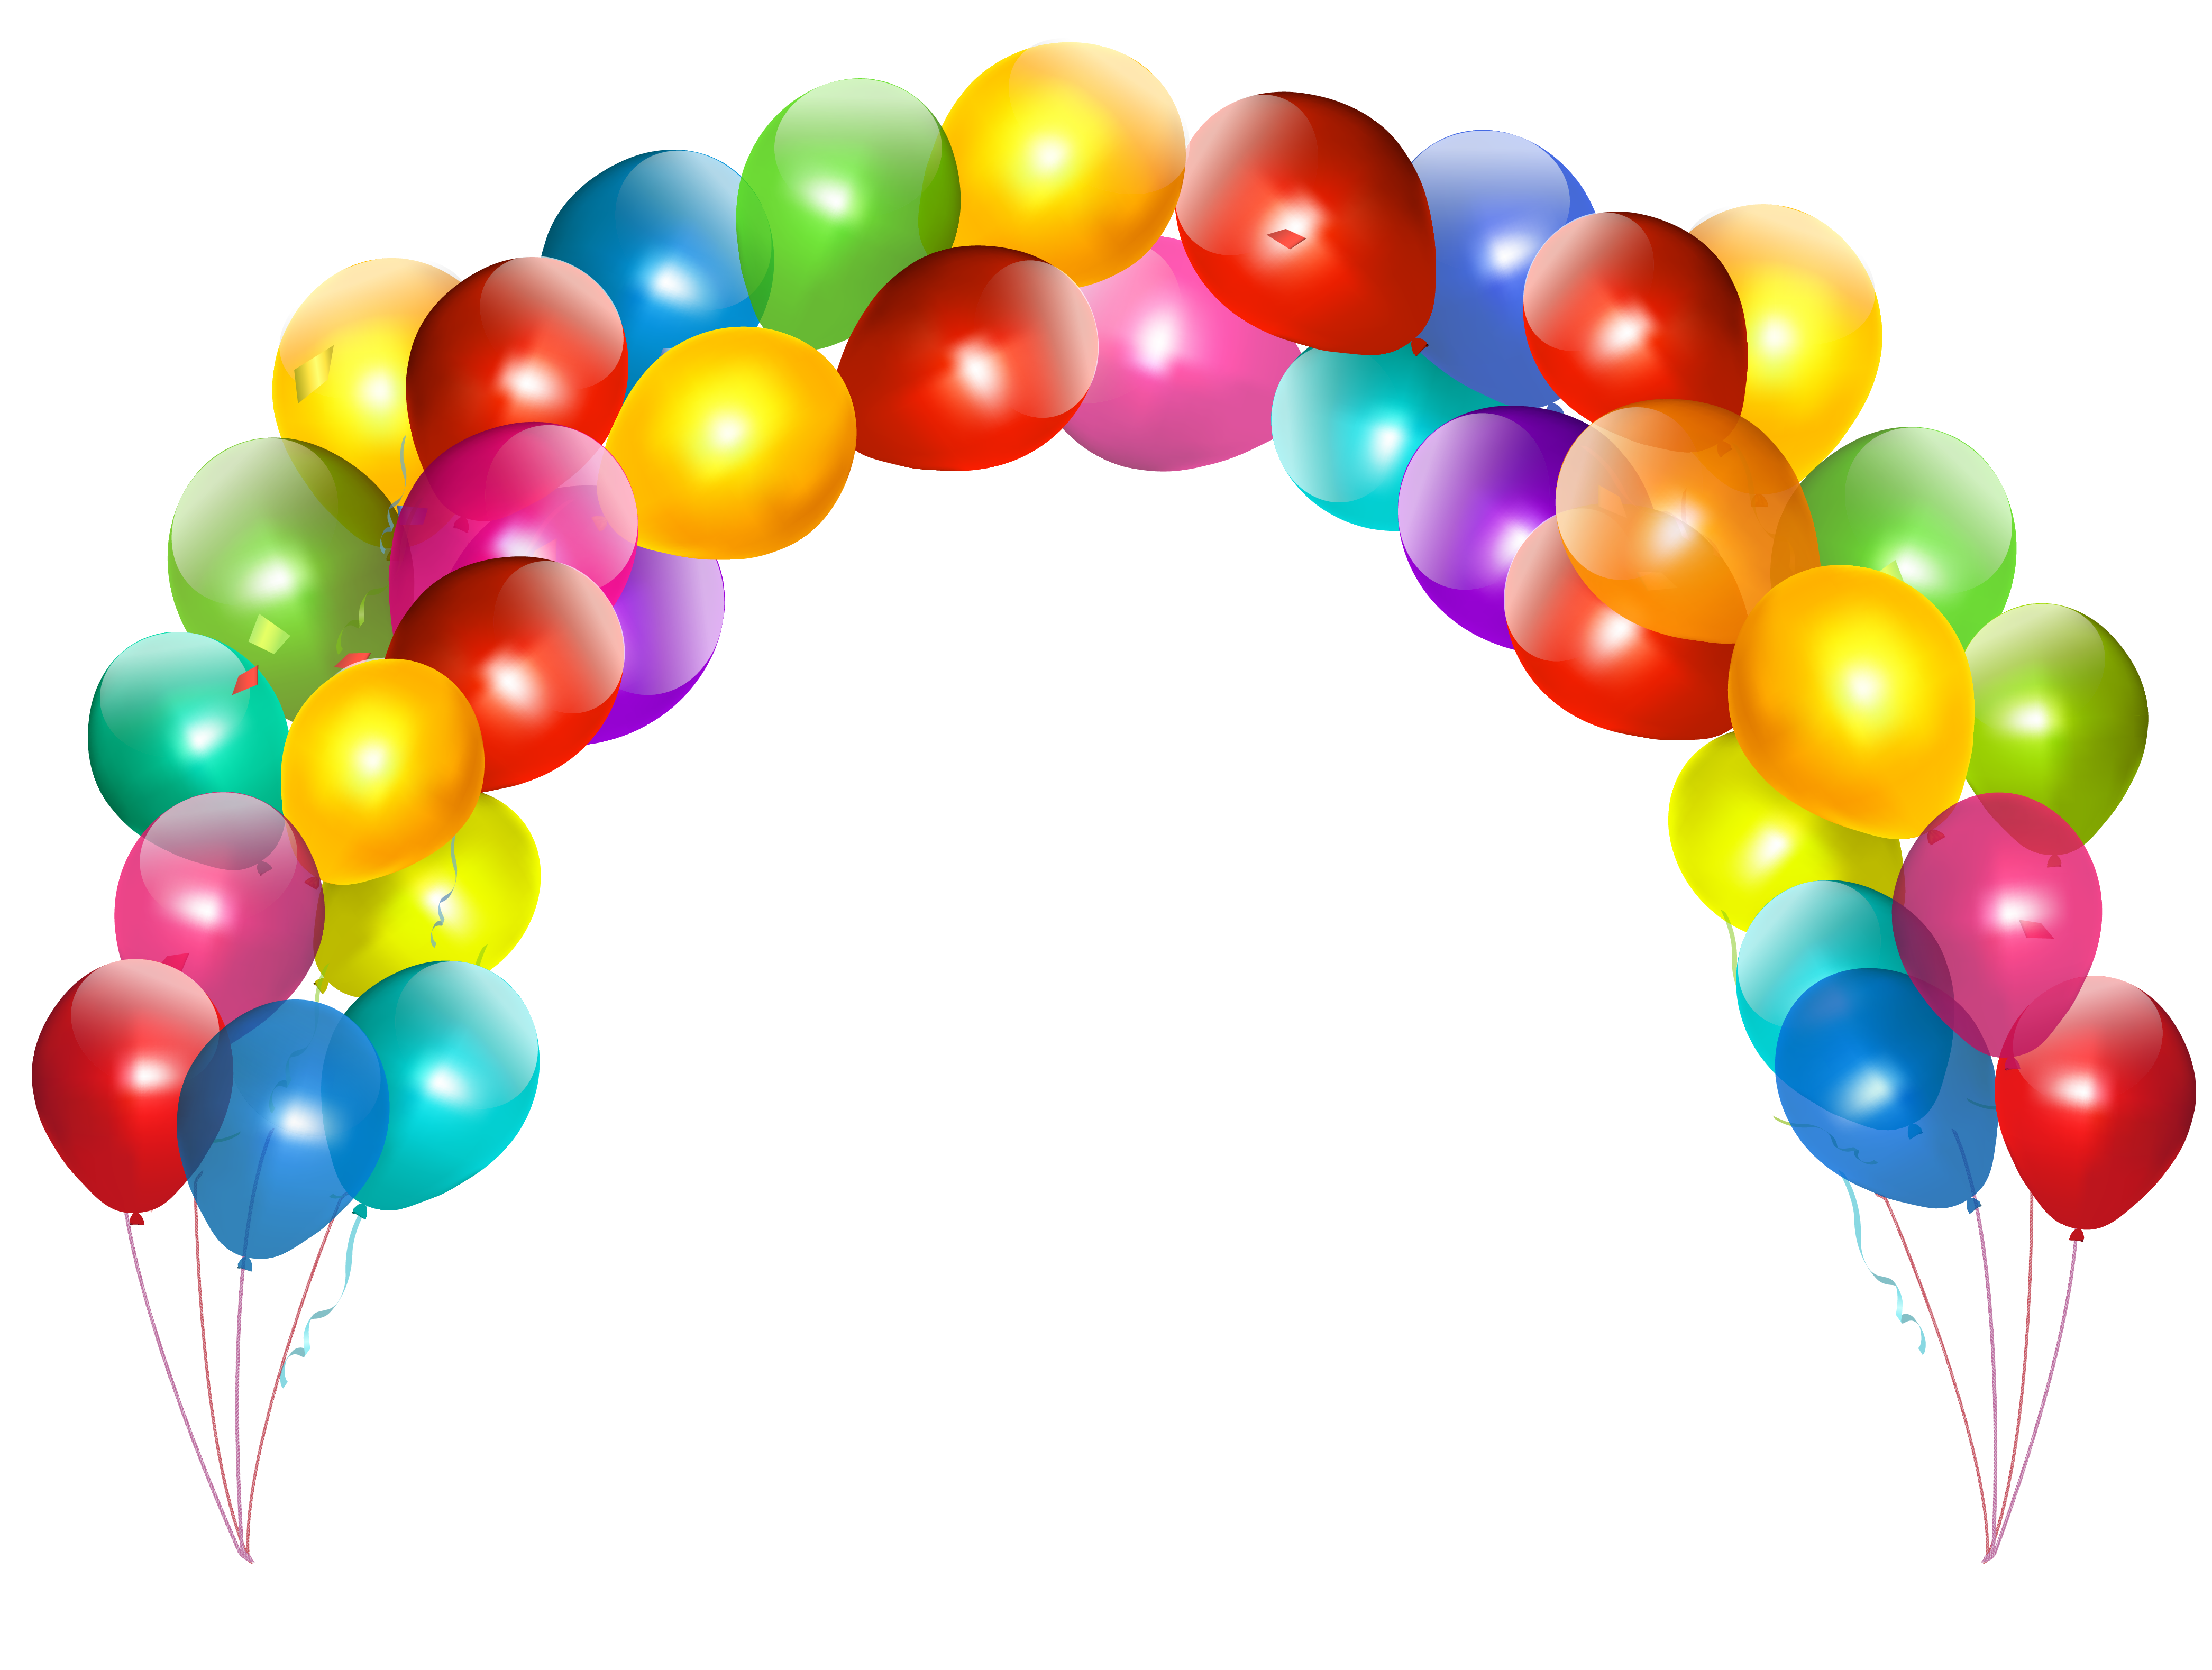 png transparent download Balloon Arch Clipart